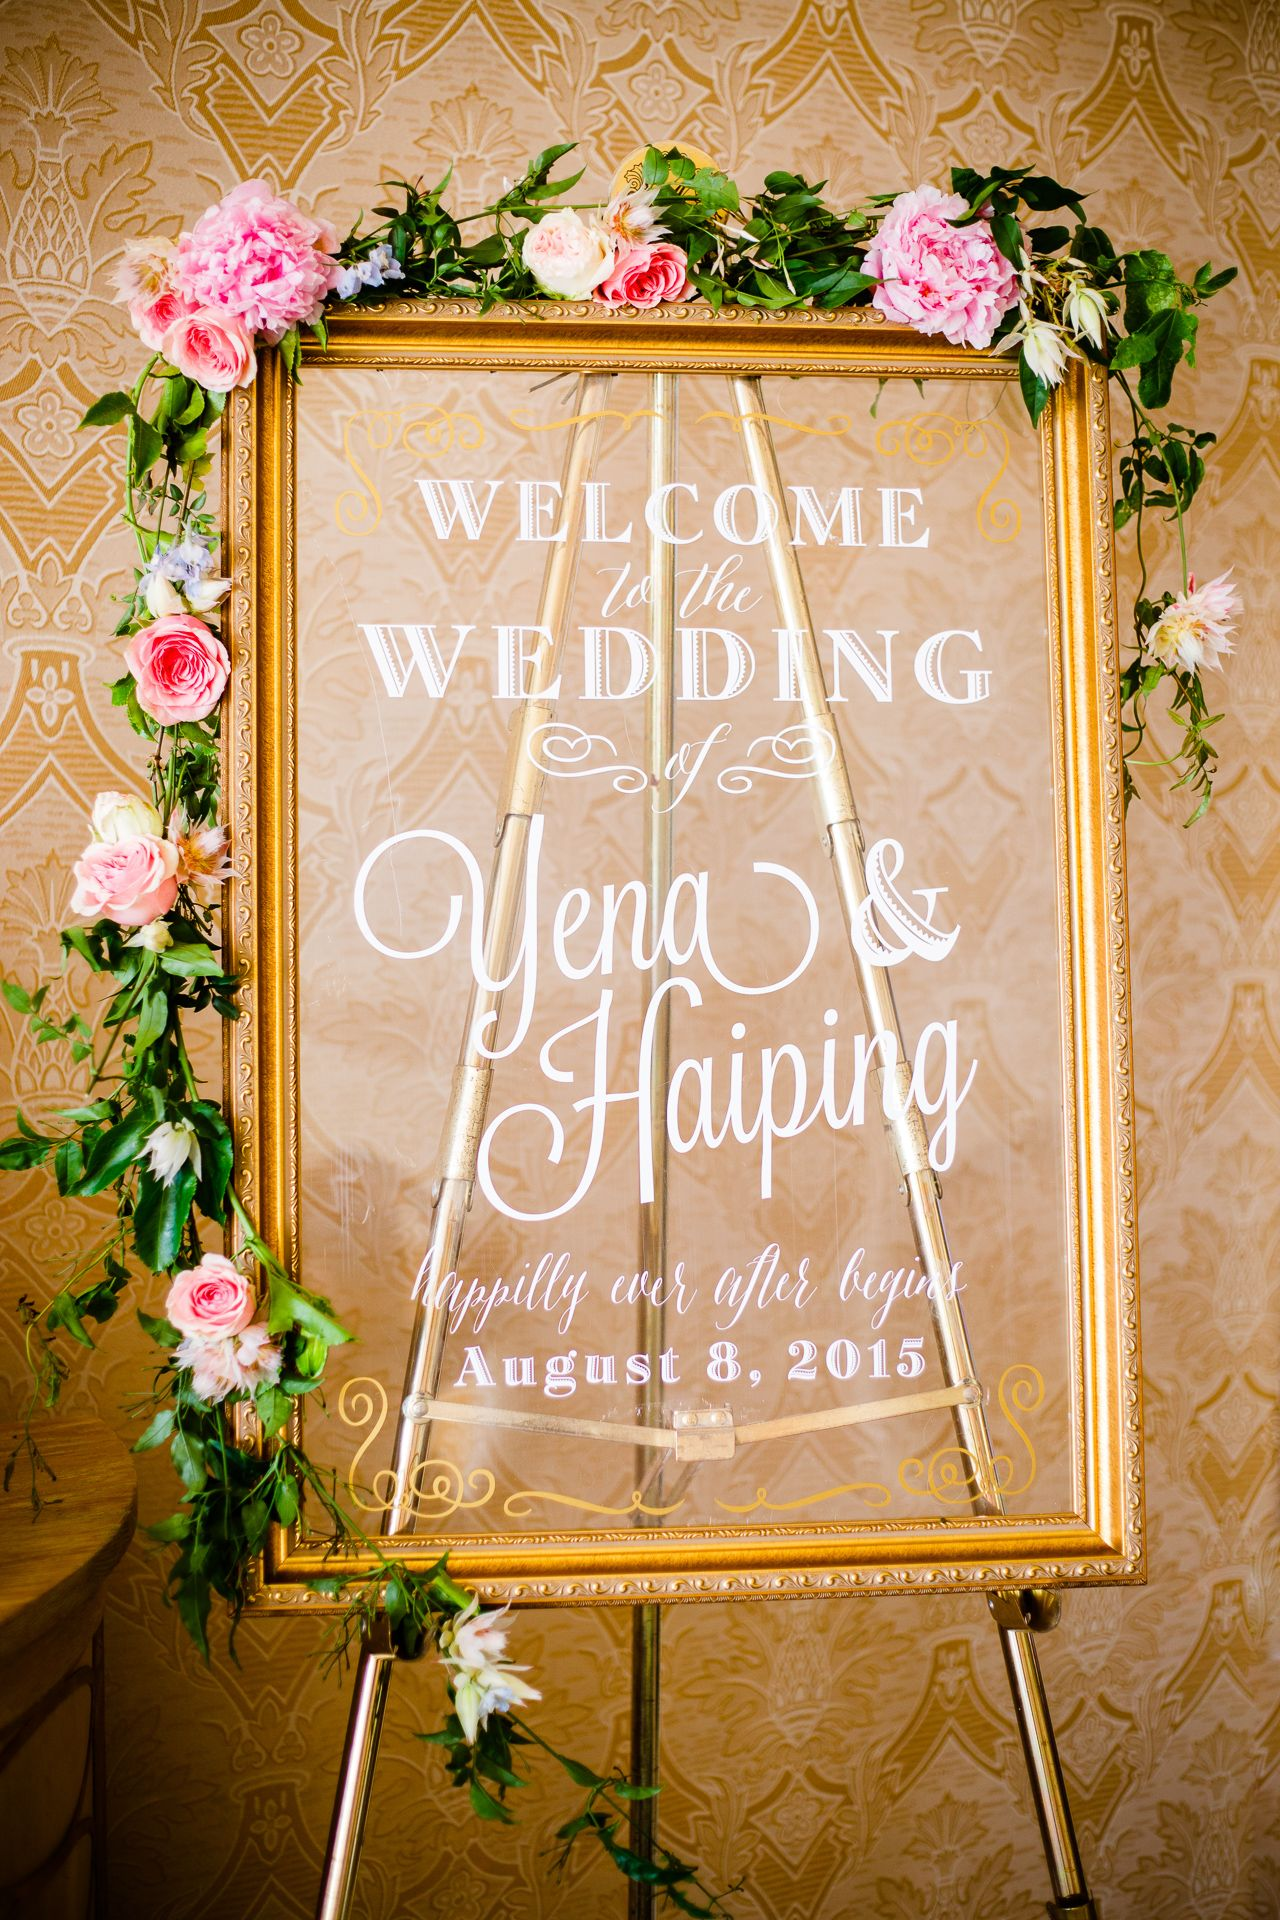 Welcome Board Event Planning Styling Design Manna Sun Events Www Mannasunevents Photo Leon Wong